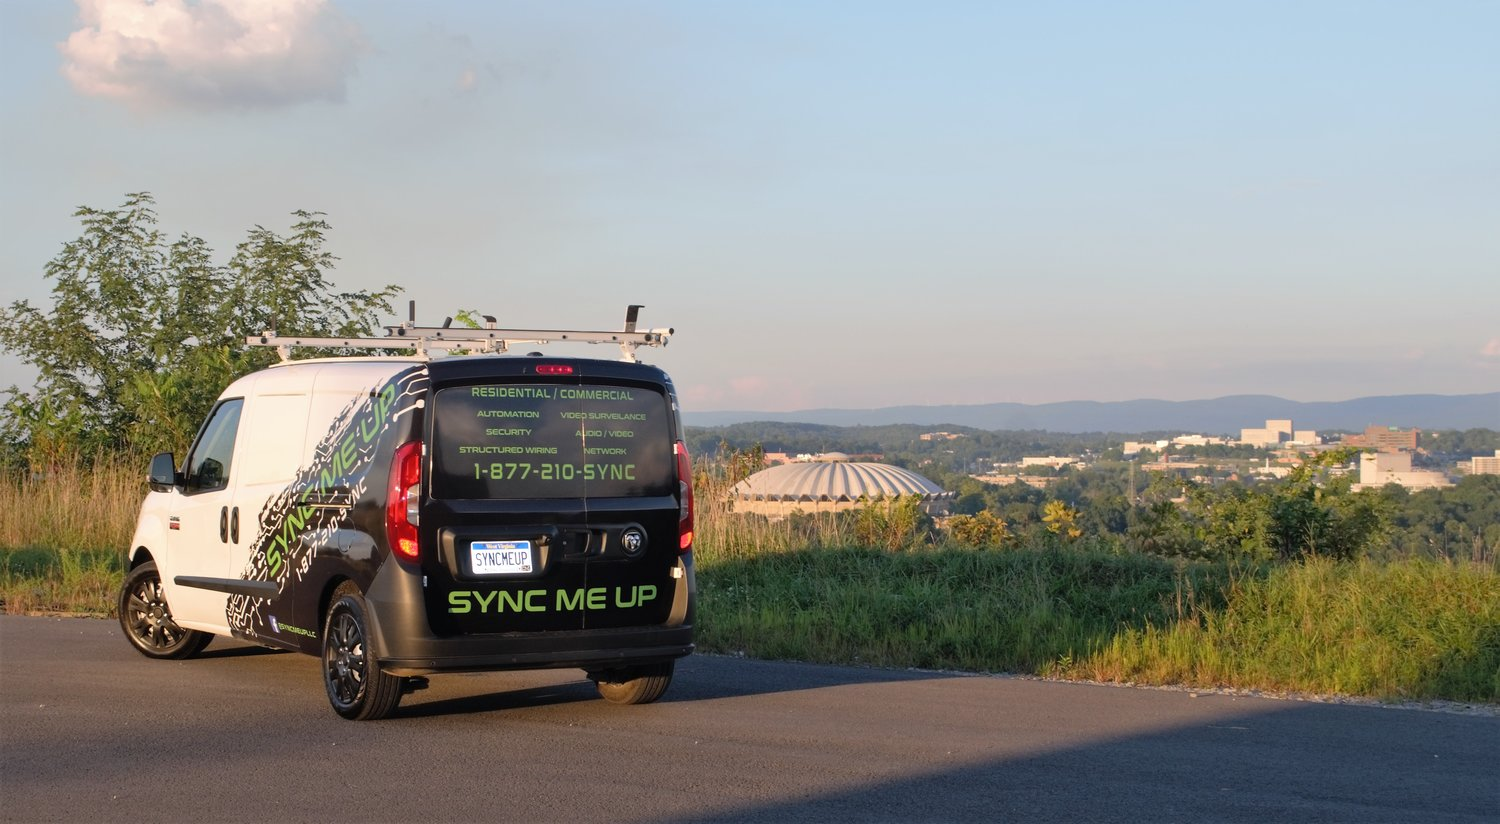 Sync Me Up Morgantown Wv Structured Wiring Commercial Welcome